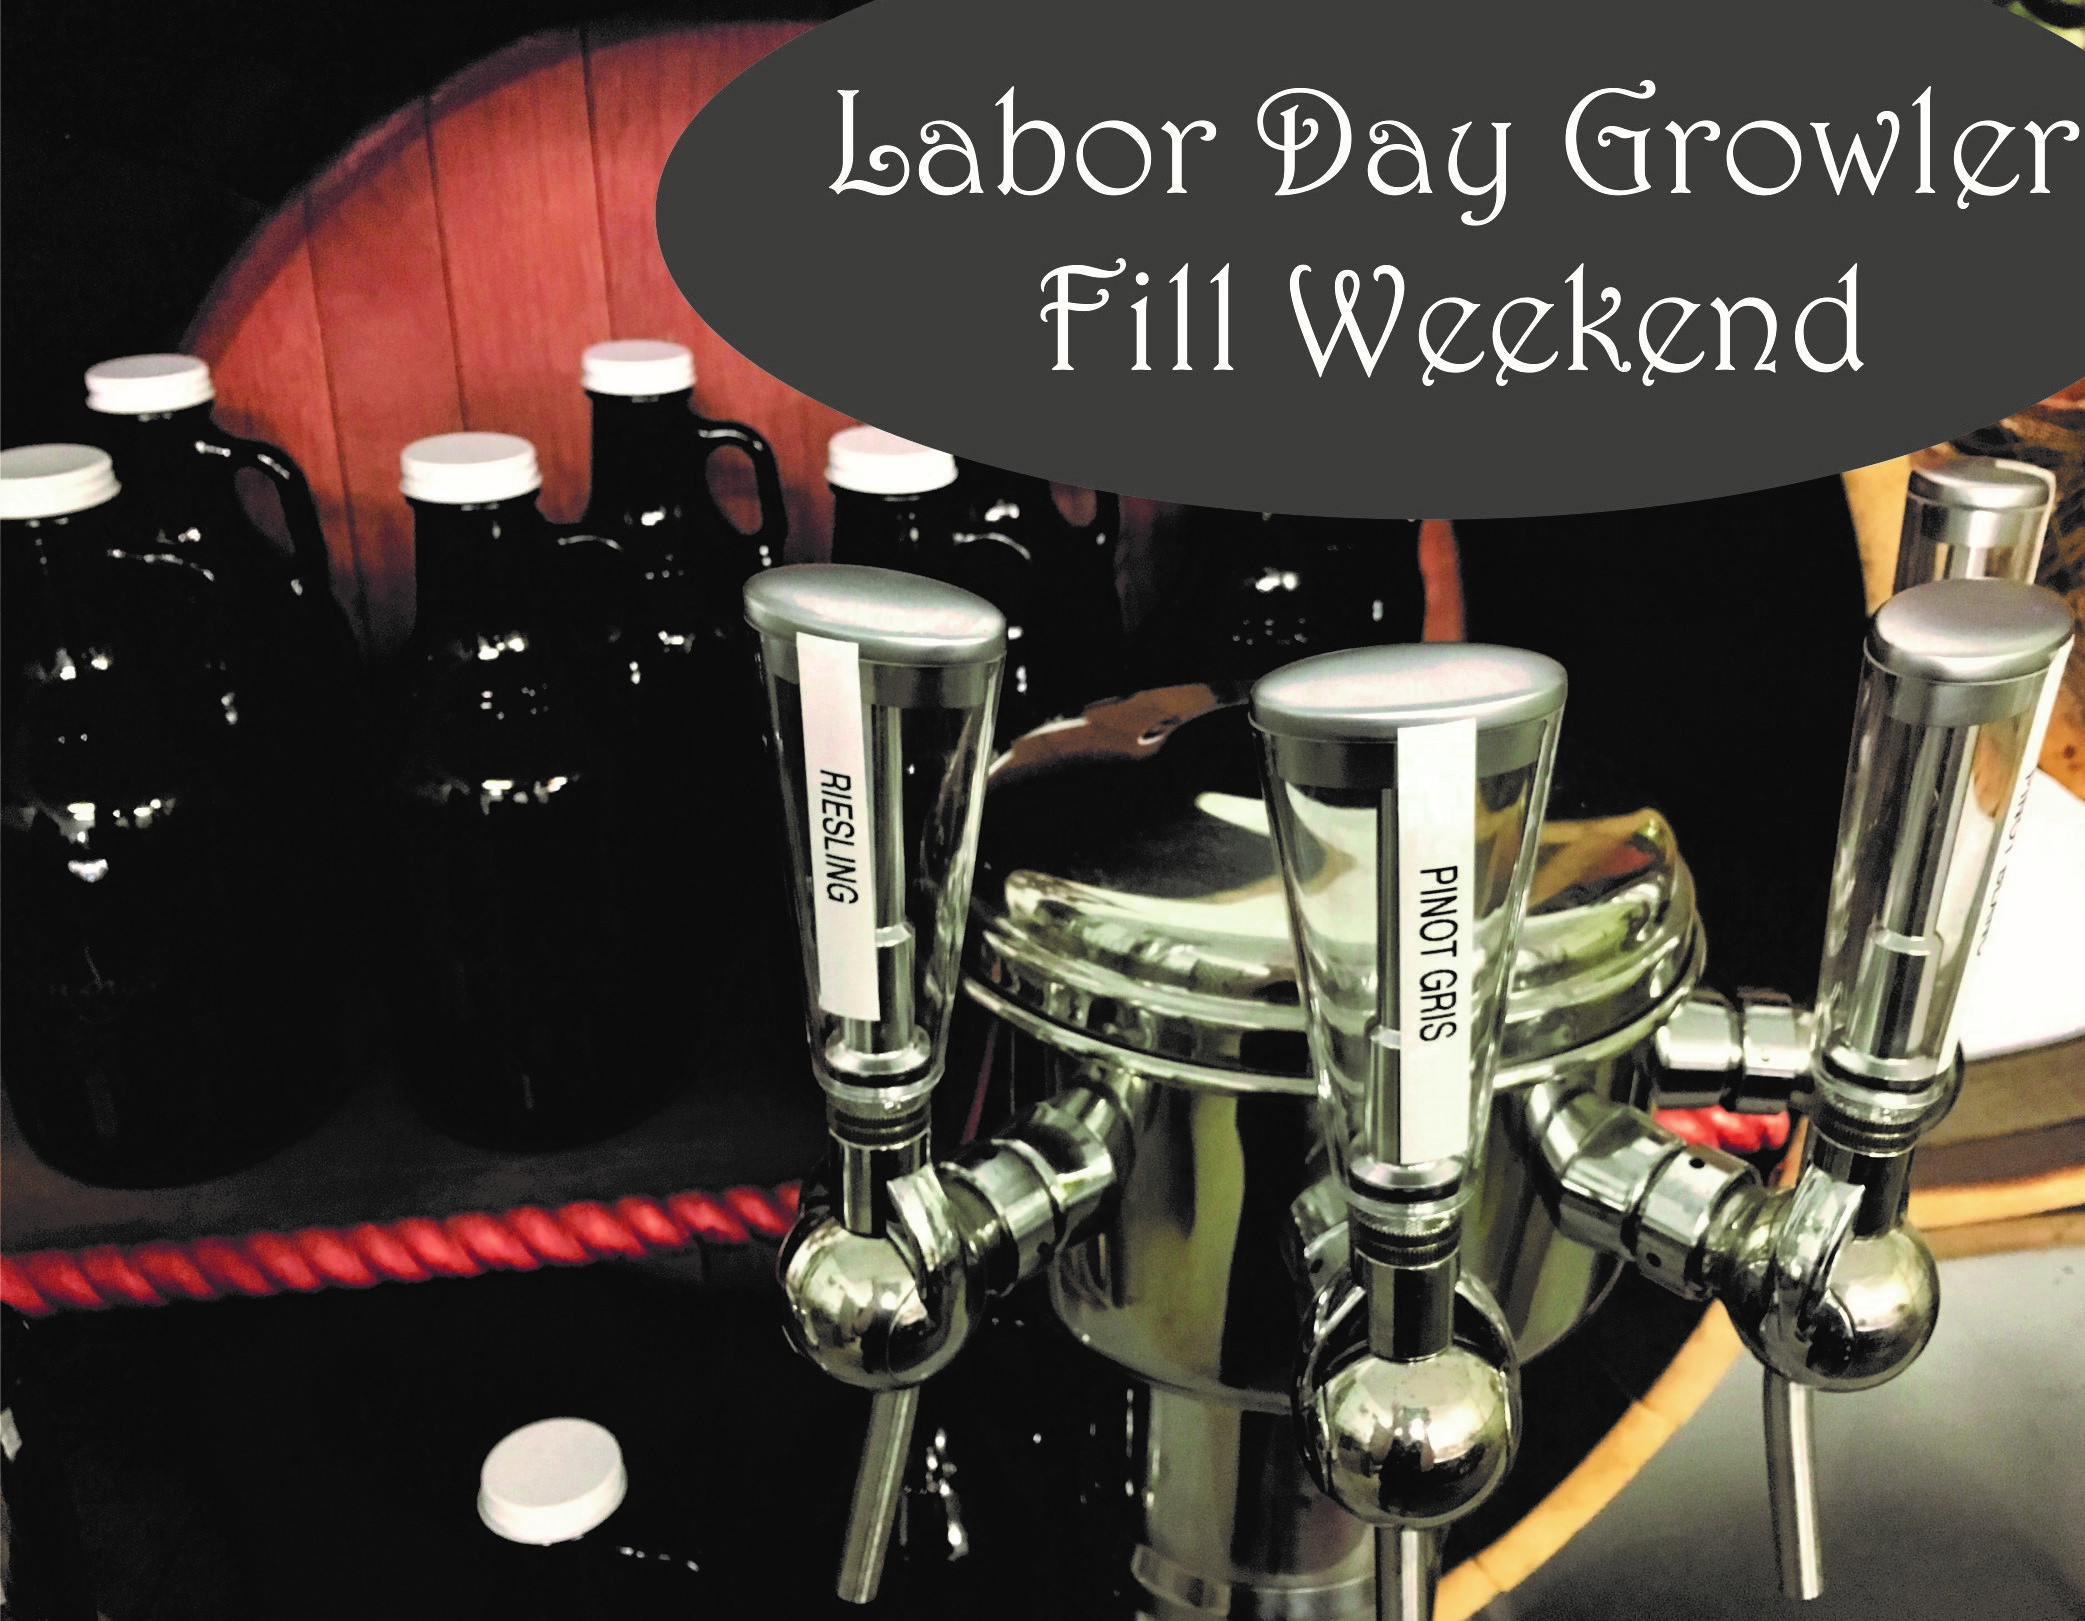 Labor Day Growler Fill Weekend Spindrift Cellars